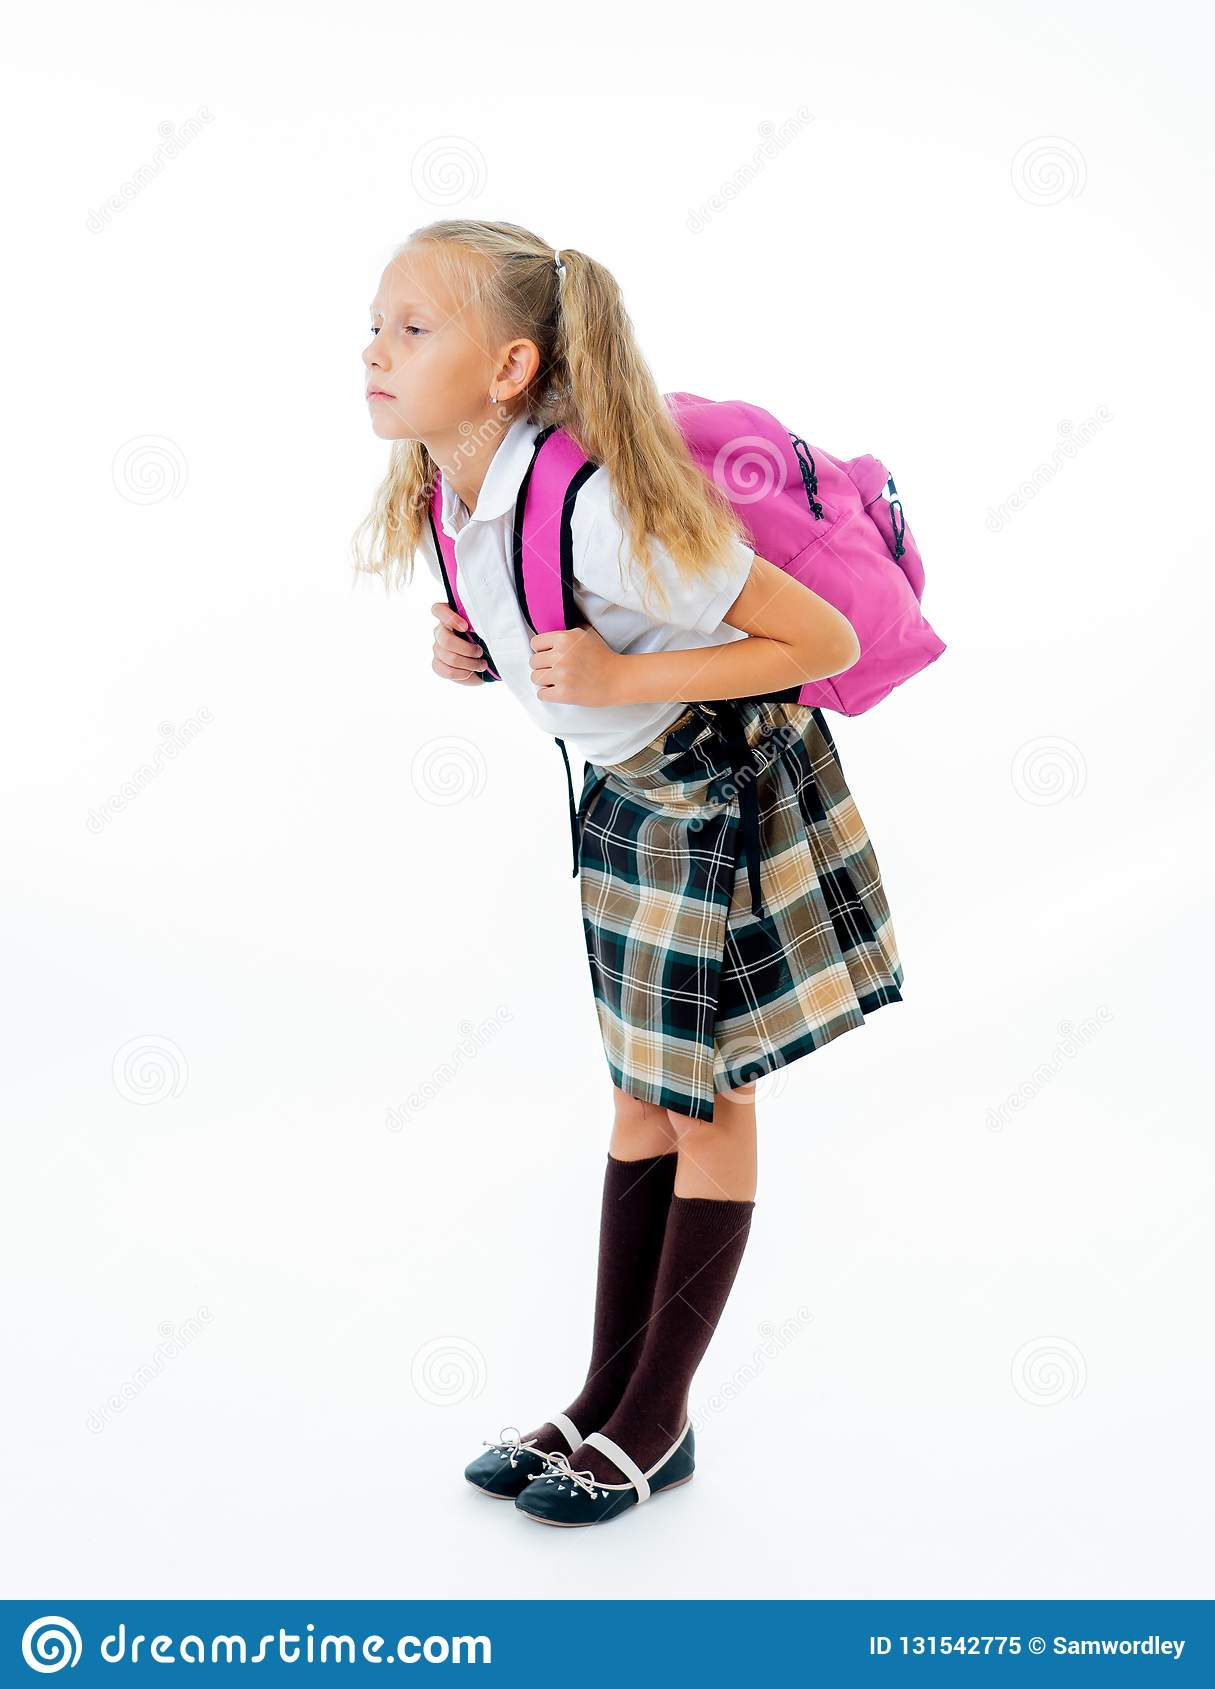 Sweet little girl in uniform carrying heavy big pink backpack or school bag full causing stress and pain on back due to overweight